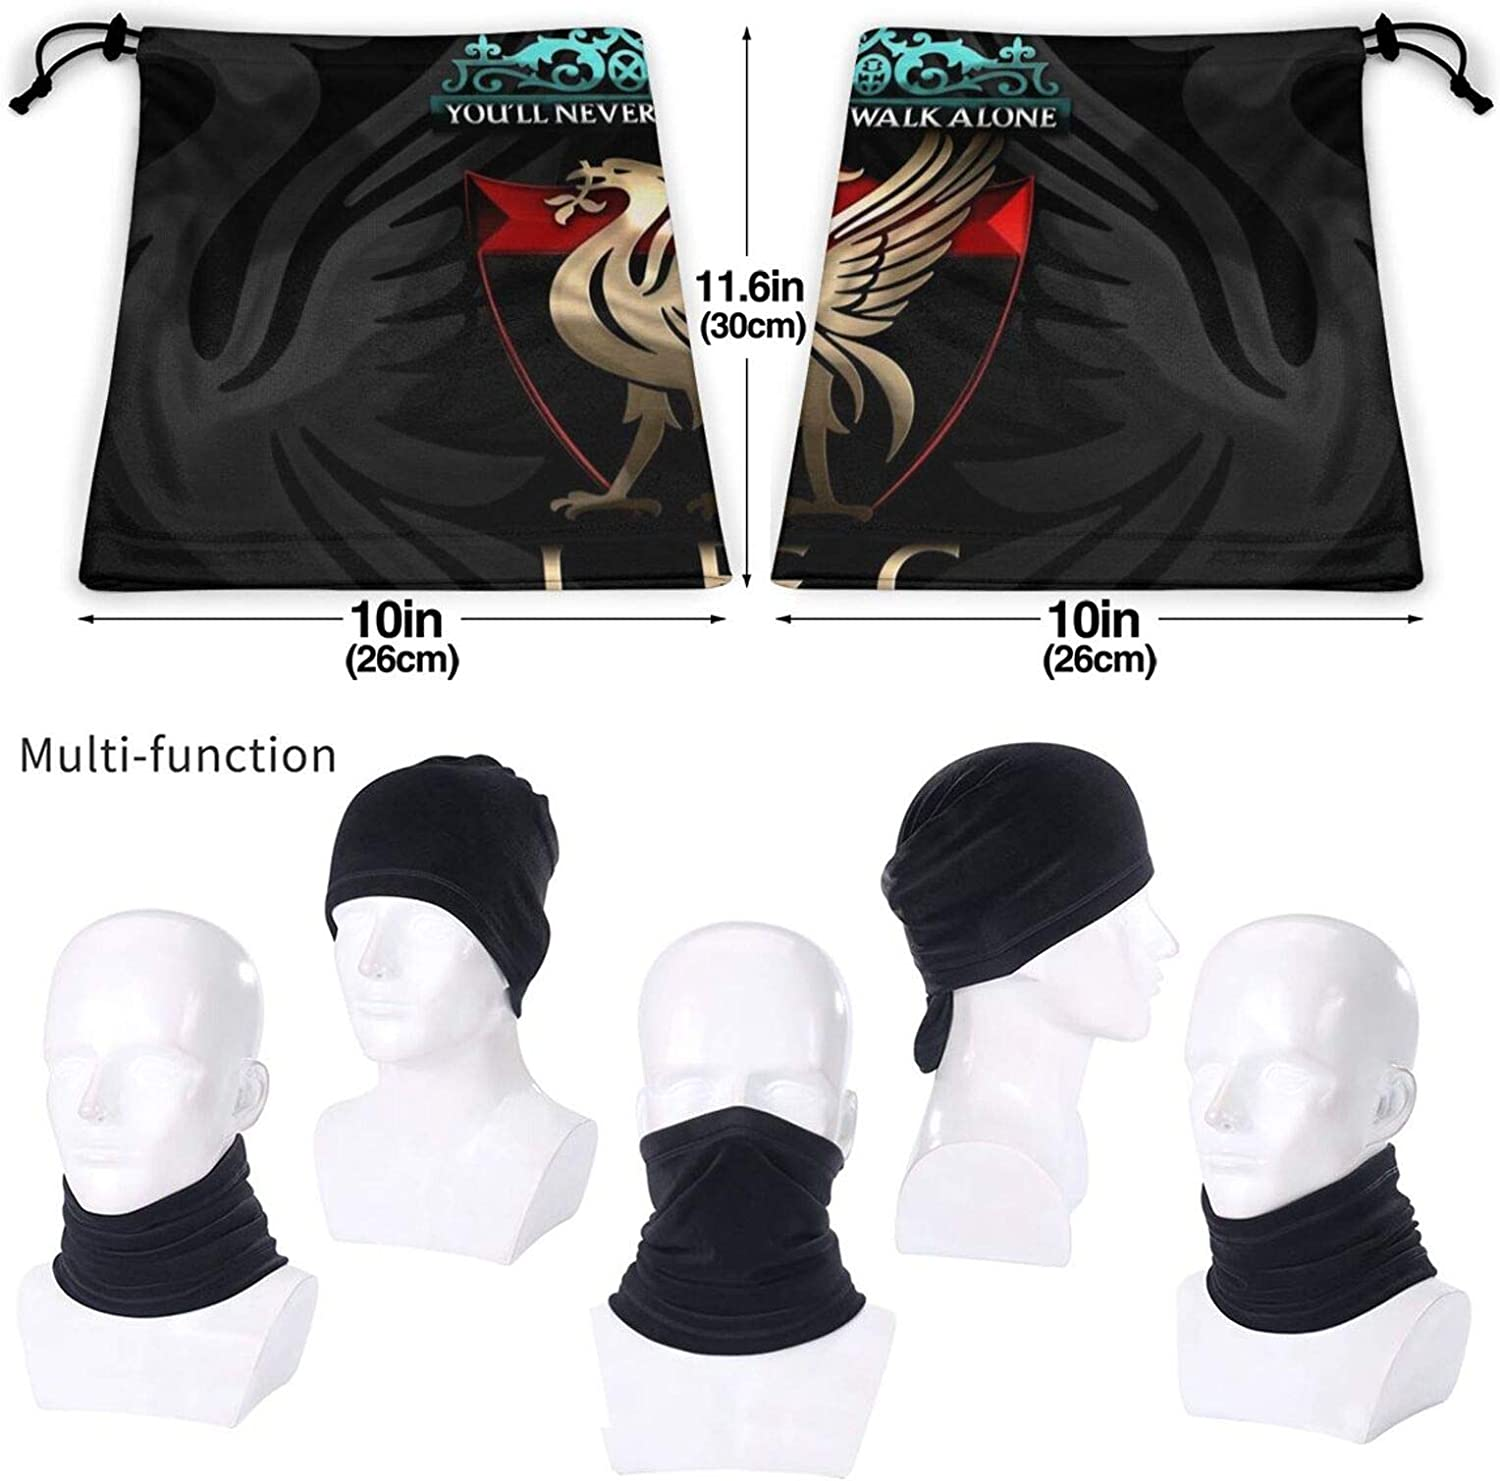 UV//Wind Protection Reusable Washable Stretchy Breathable Bandana for Yoga Running Hiking Balaclava Headwear Neck warmer Liverpool football club Unisex Neck Gaiter Tube Snood Face Coverings